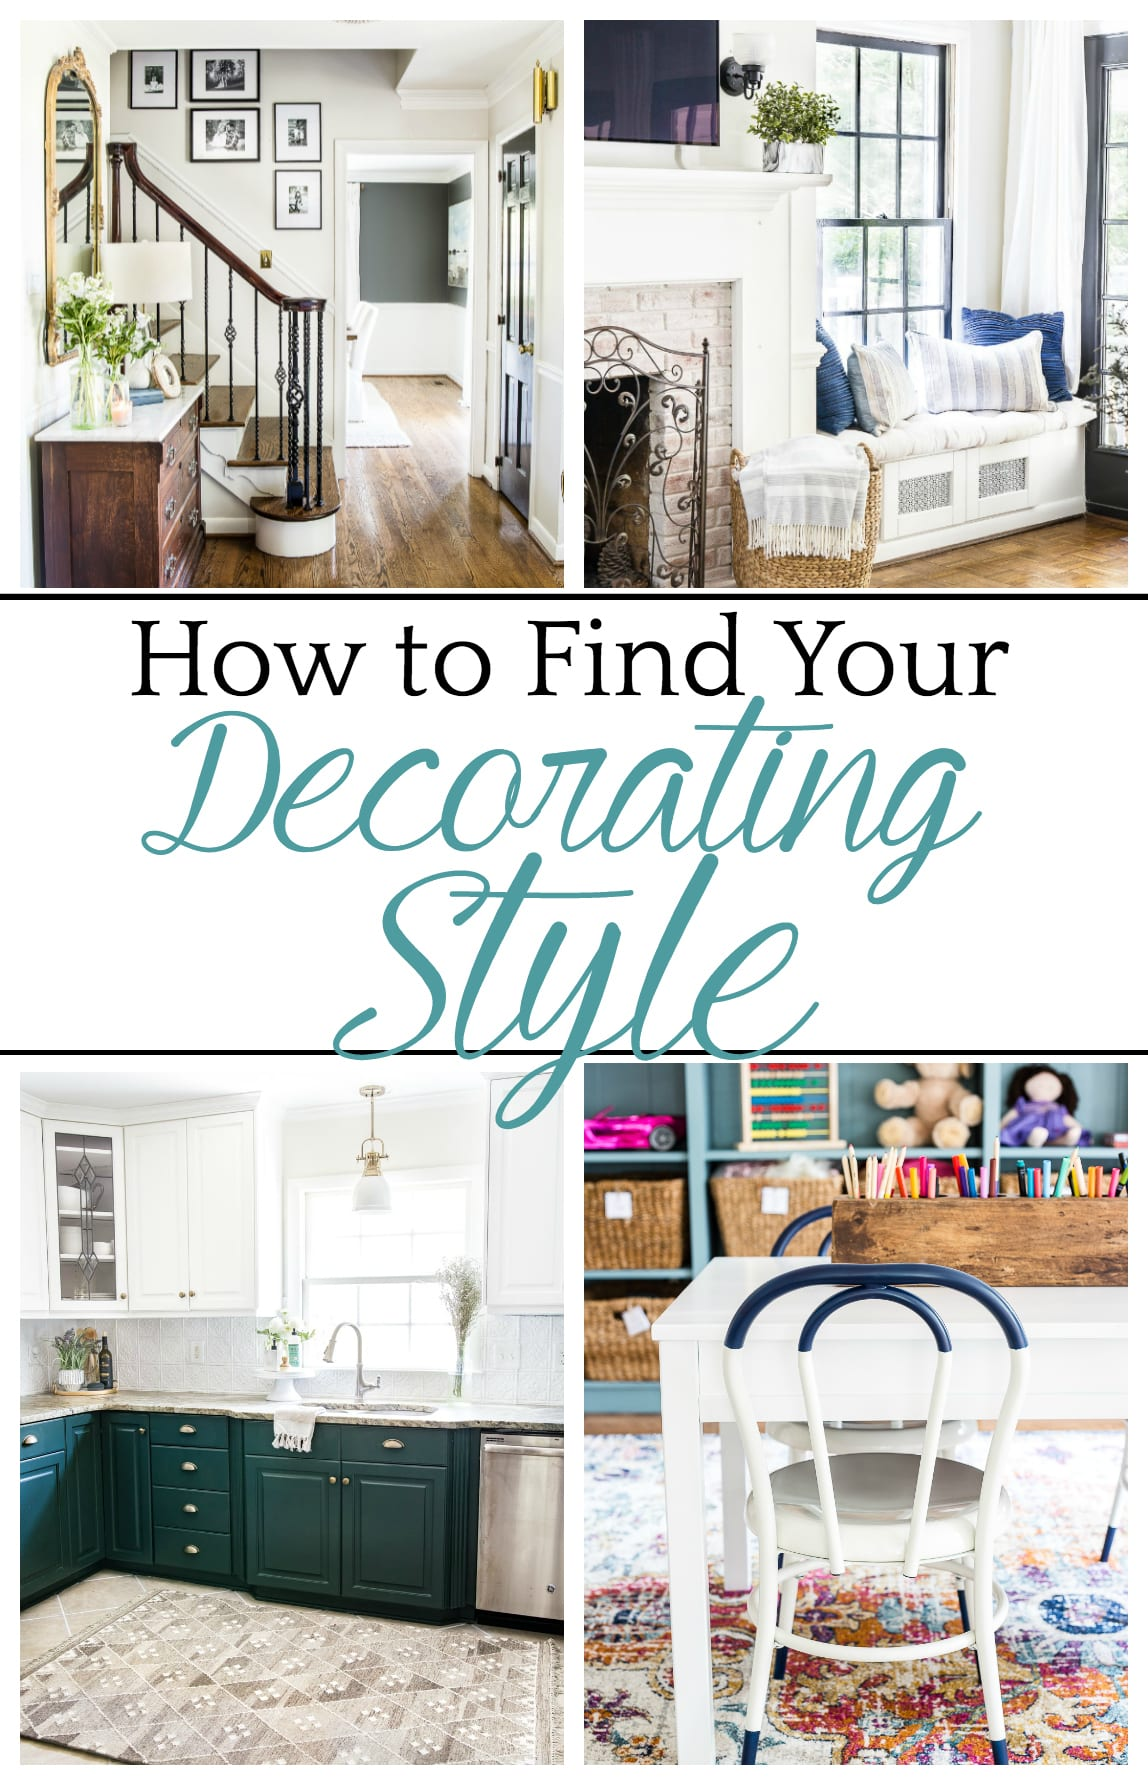 6 steps to find your decorating style by examining your personality, your lifestyle, your inspirations, and what you already own to create the home you love. #decoratingstyle #findyourdecoratingstyle